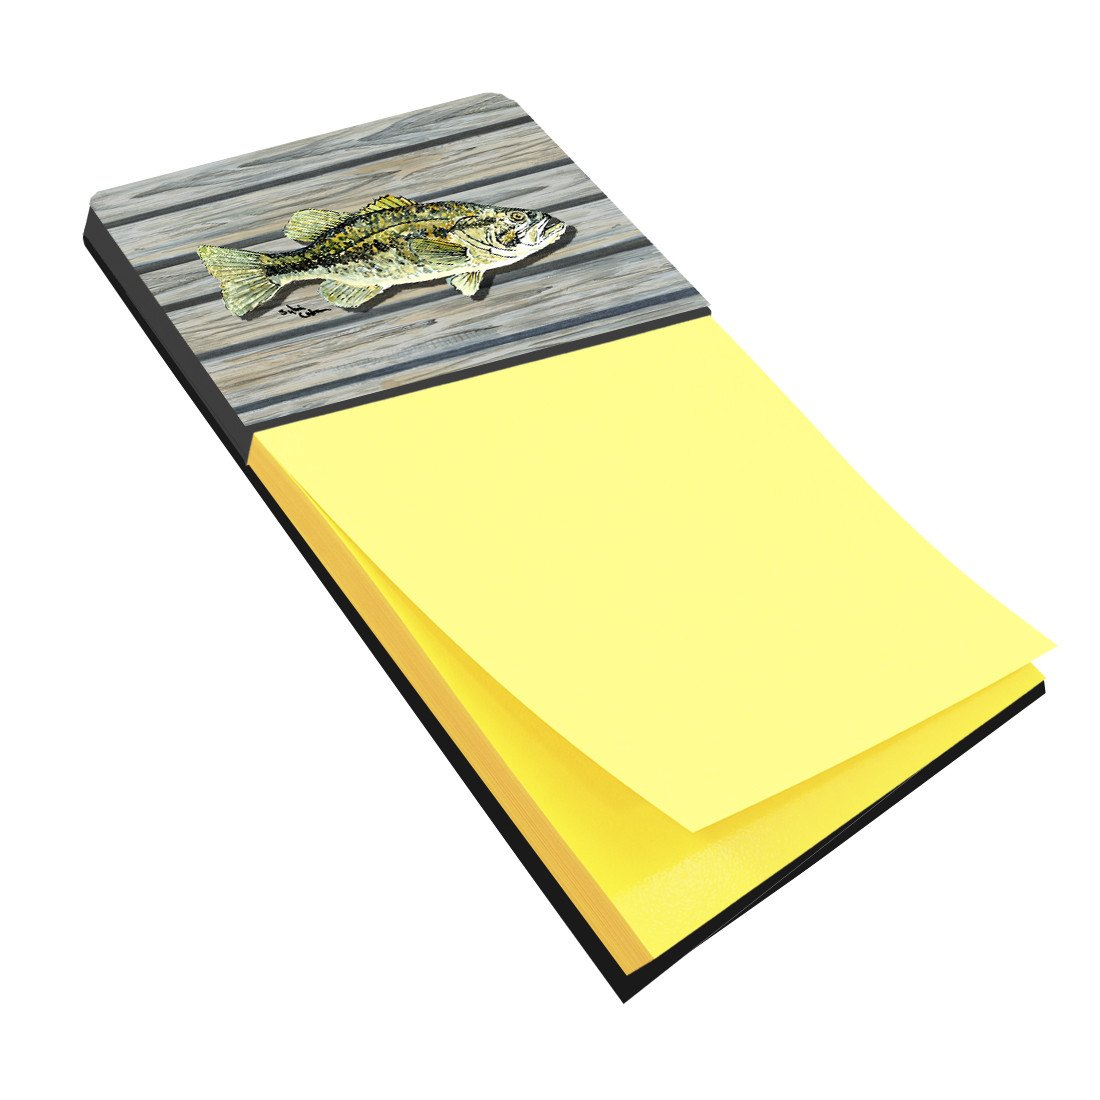 Fish Bass Small Mouth Refiillable Sticky Note Holder or Postit Note Dispenser 8493SN by Caroline's Treasures